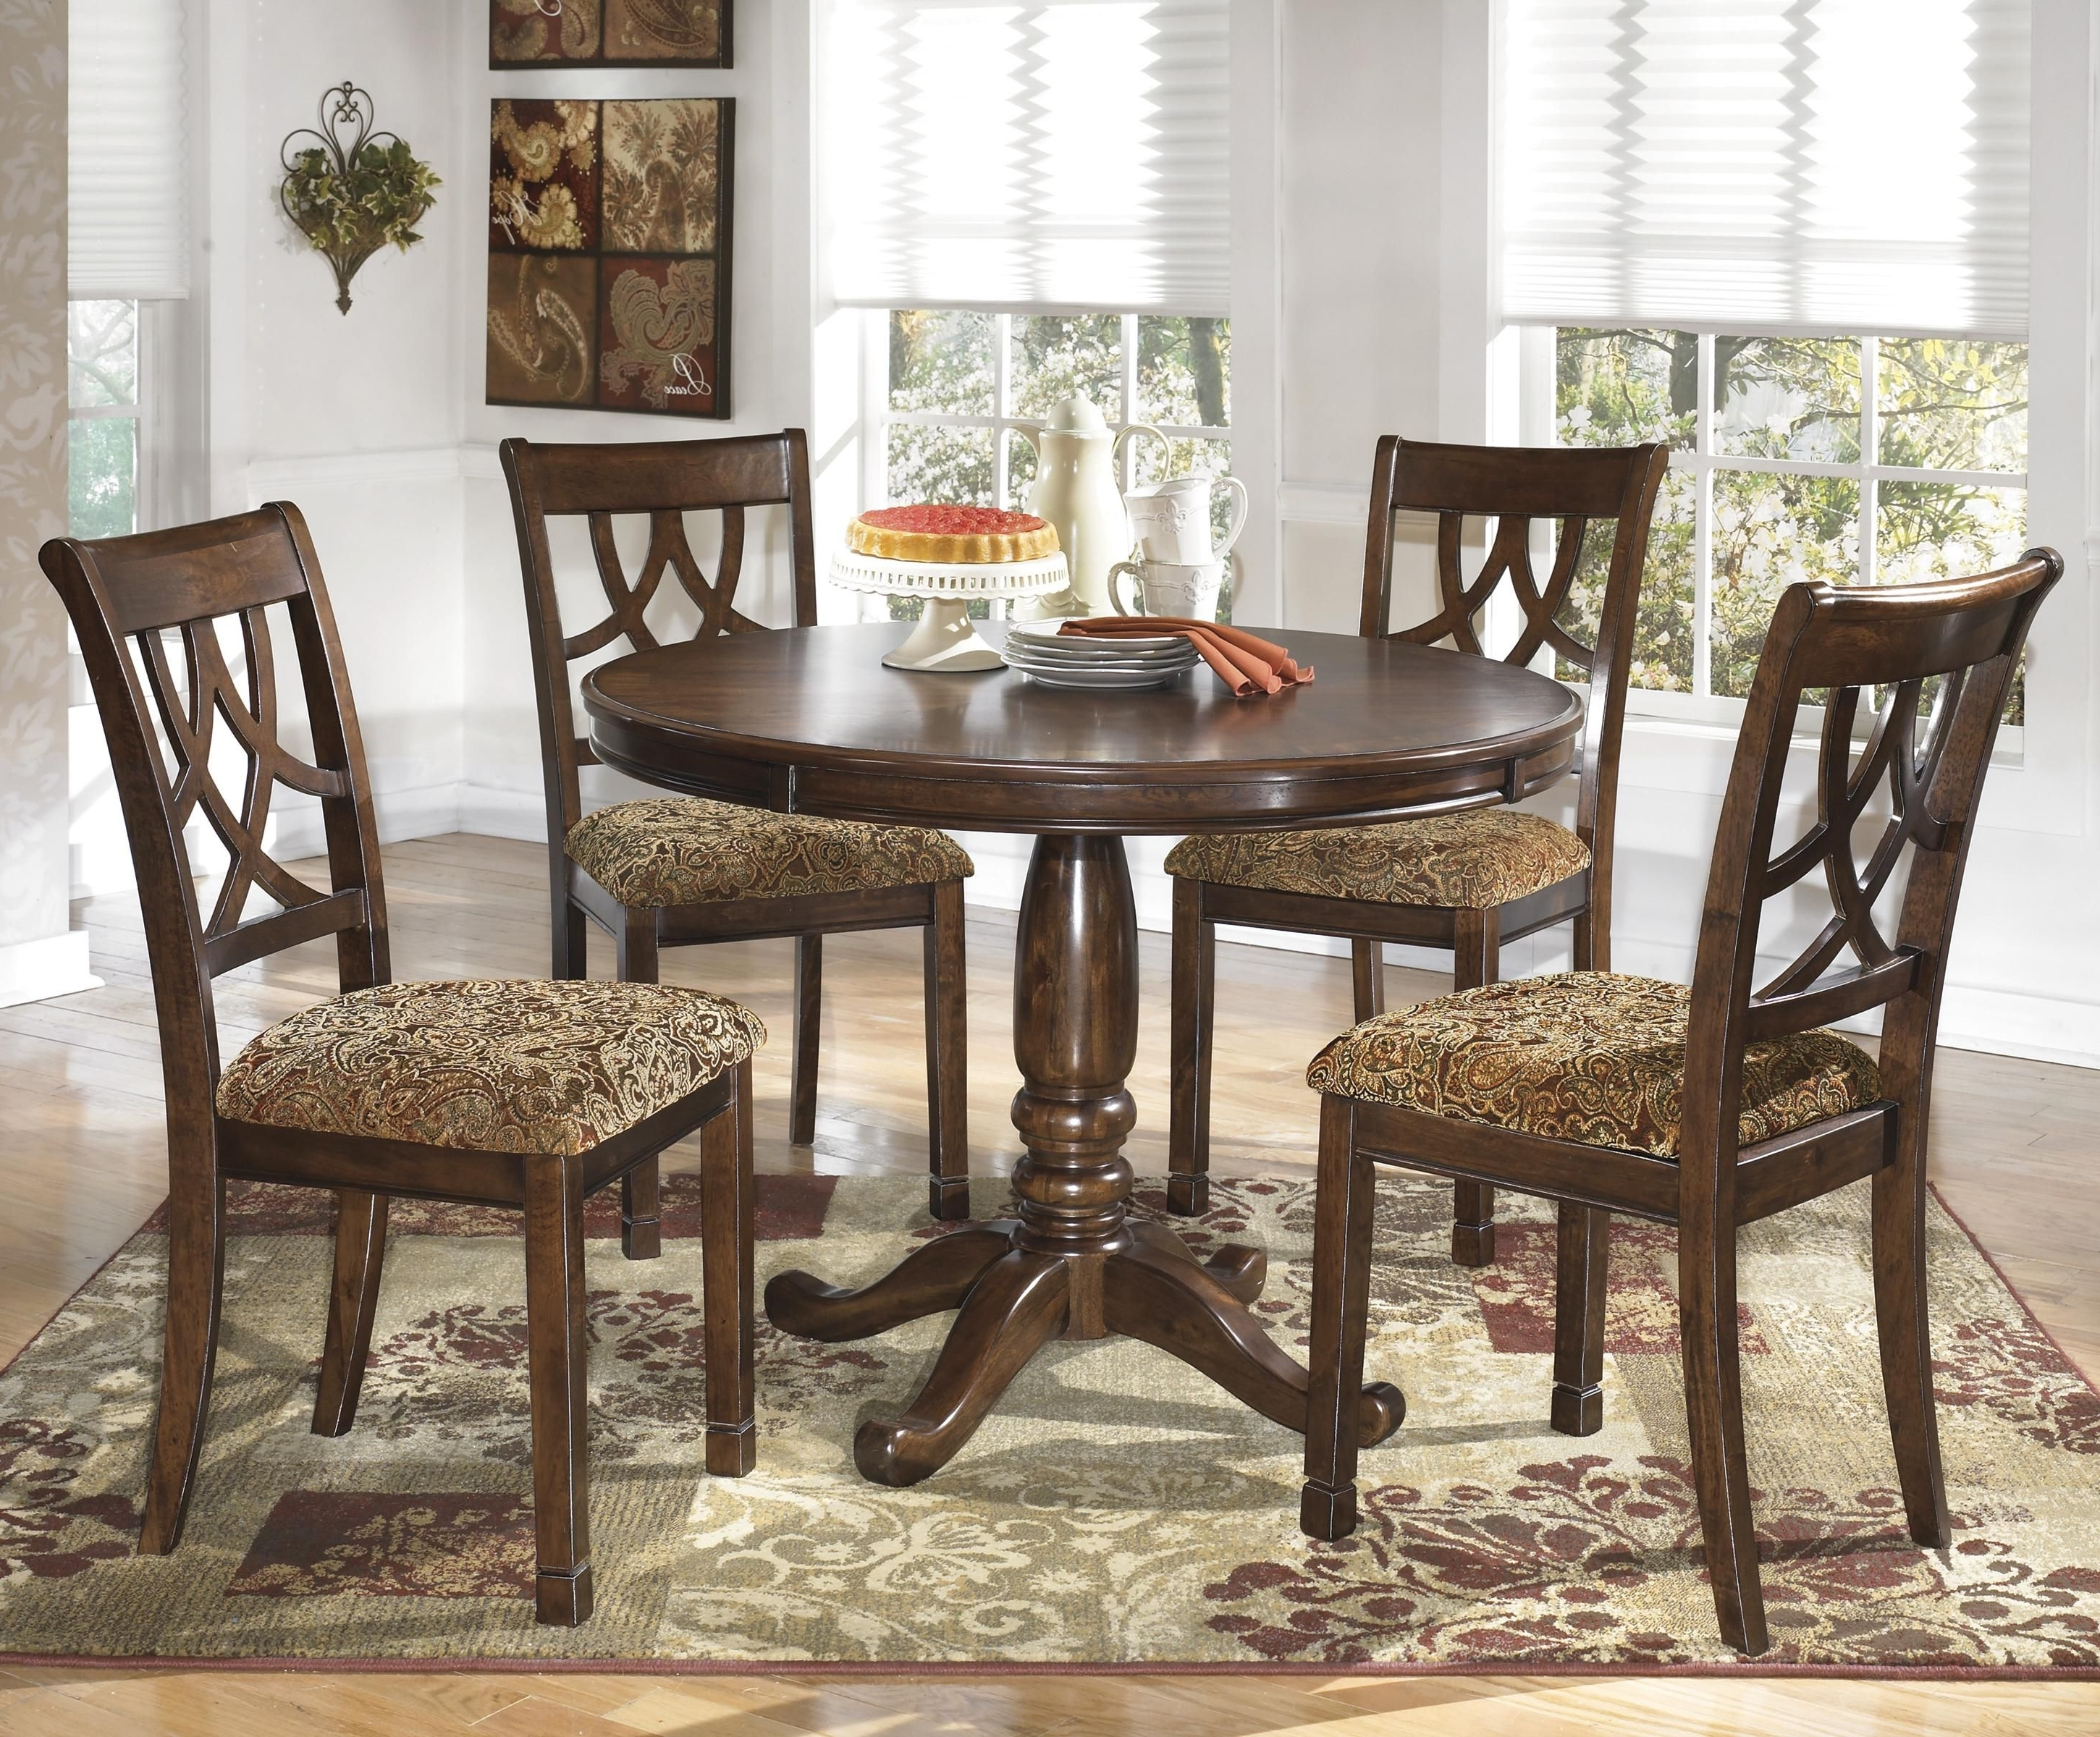 Craftsman 7 Piece Rectangular Extension Dining Sets With Arm & Uph Side Chairs Within Most Current Leahlyn 5 Piece Round Dining Table Setsignature Designashley (View 10 of 25)